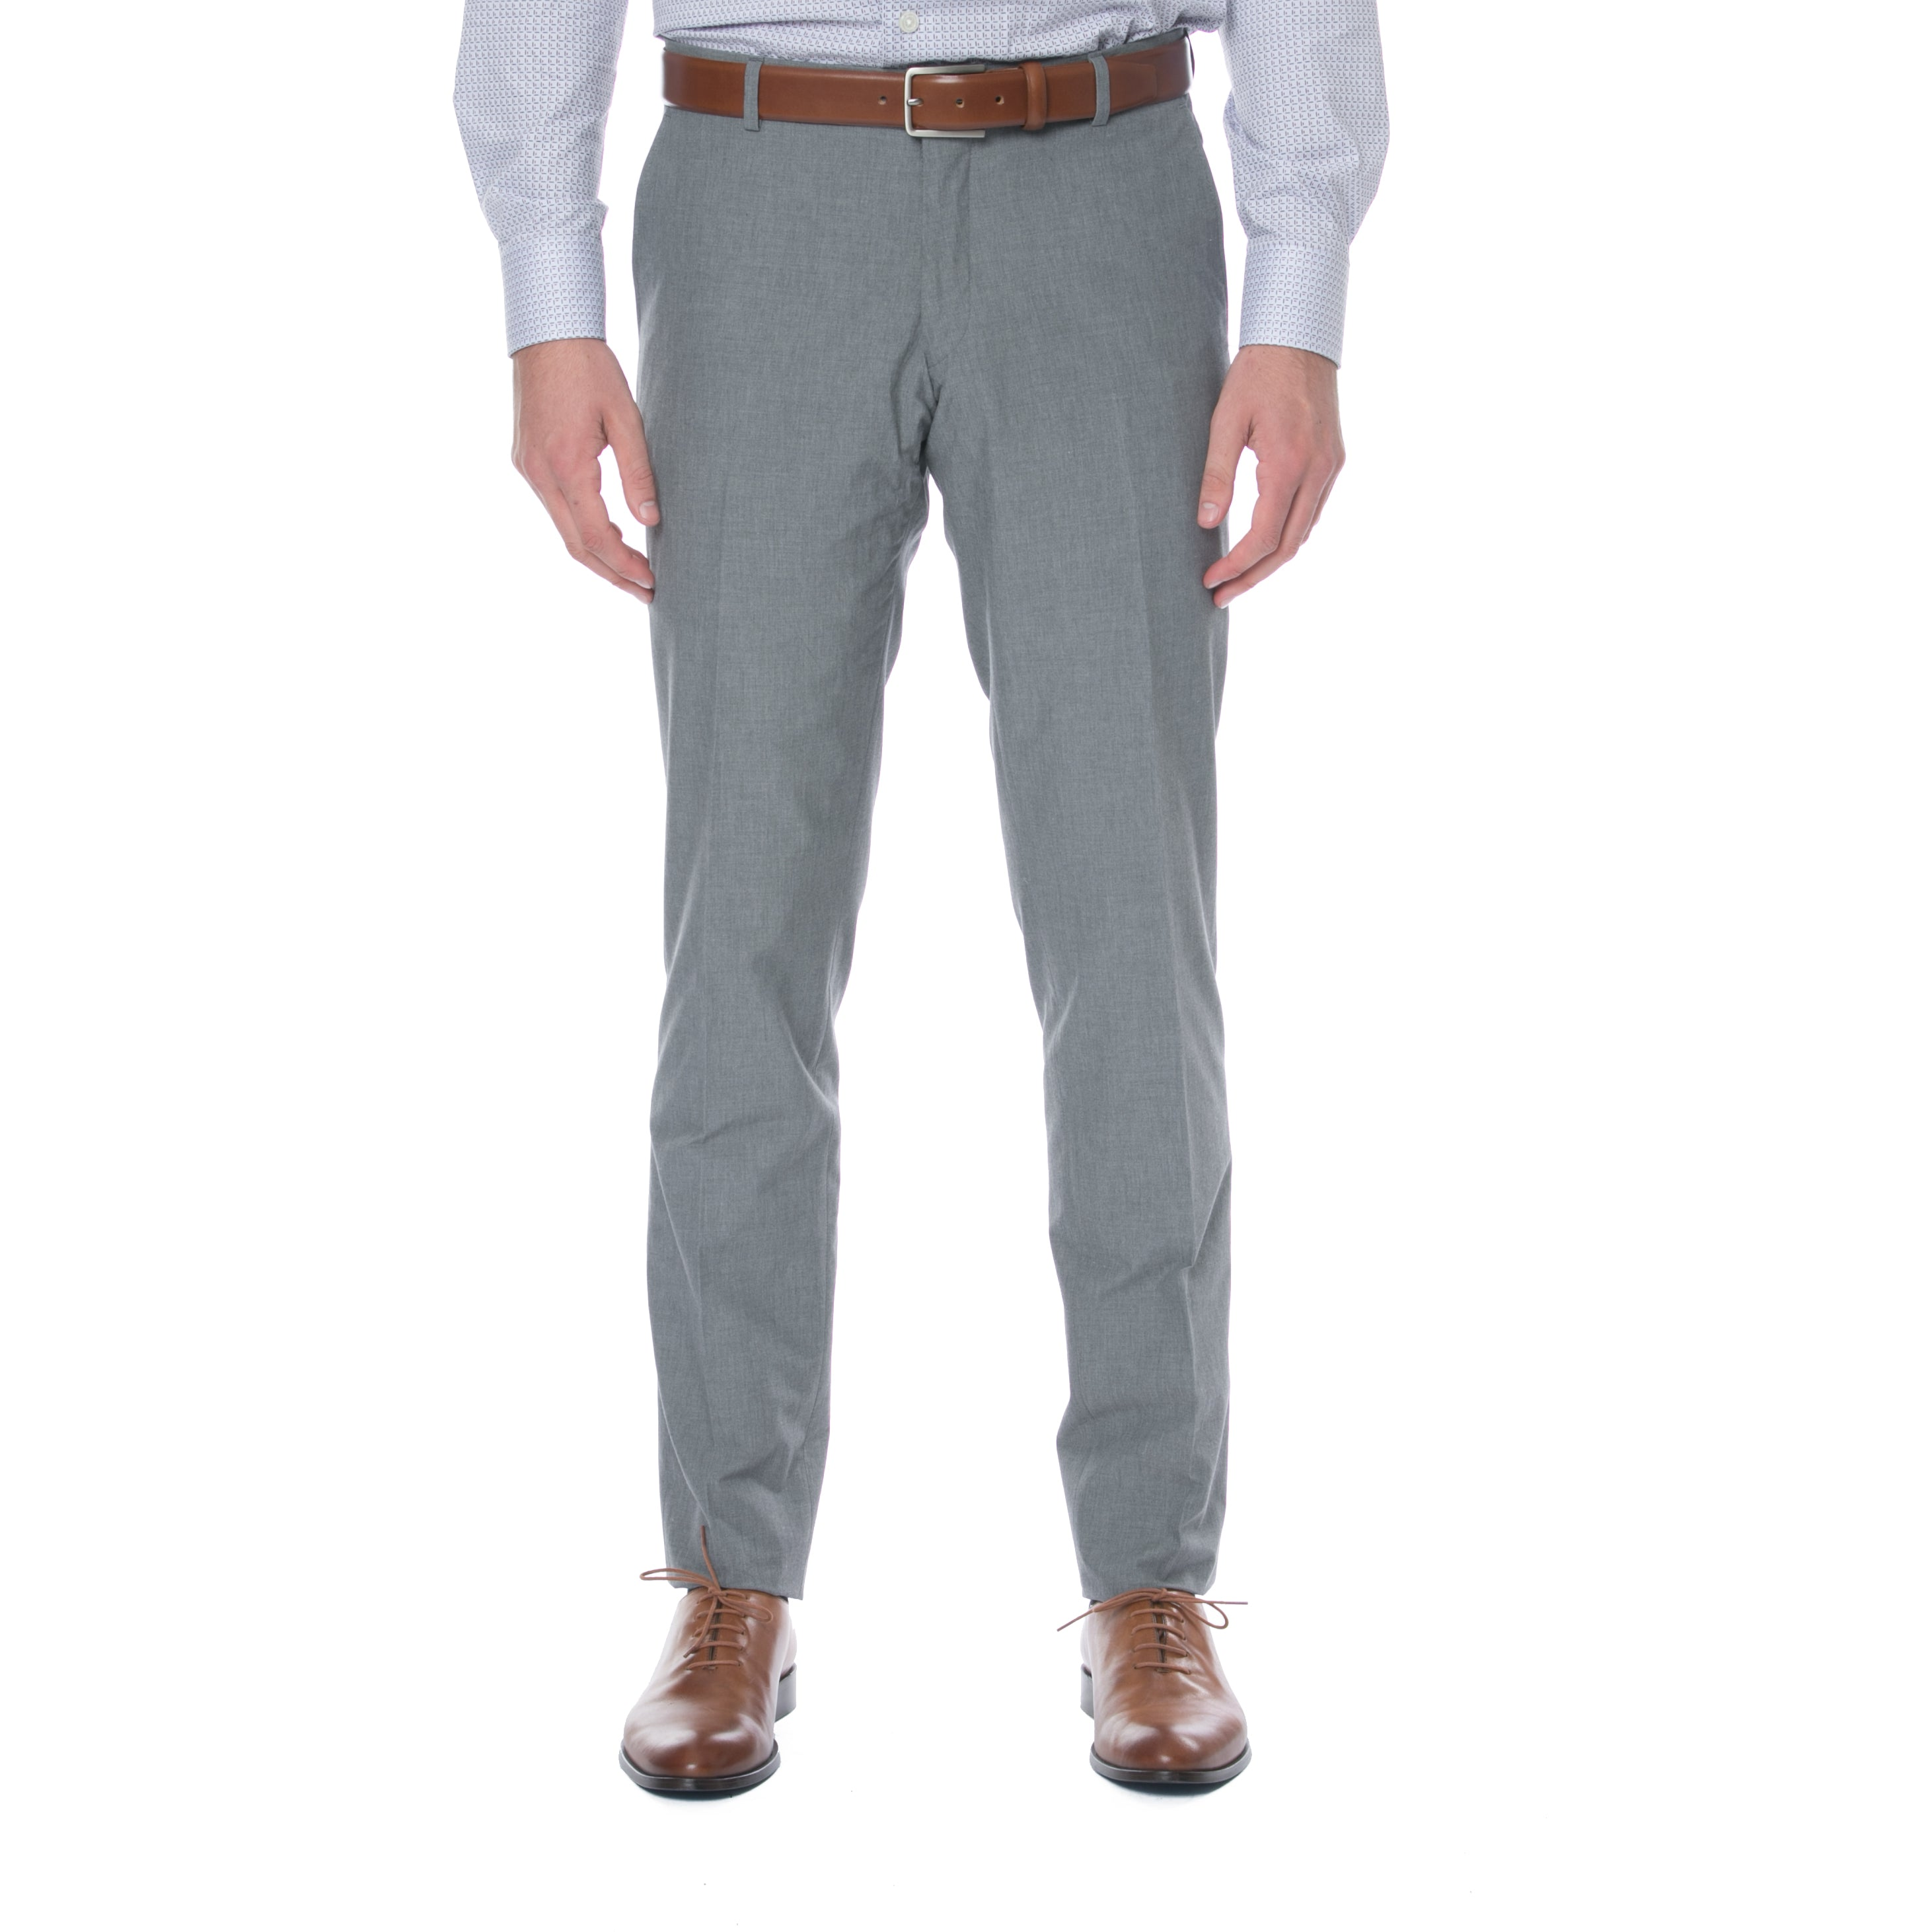 Light Grey Cotton Trouser